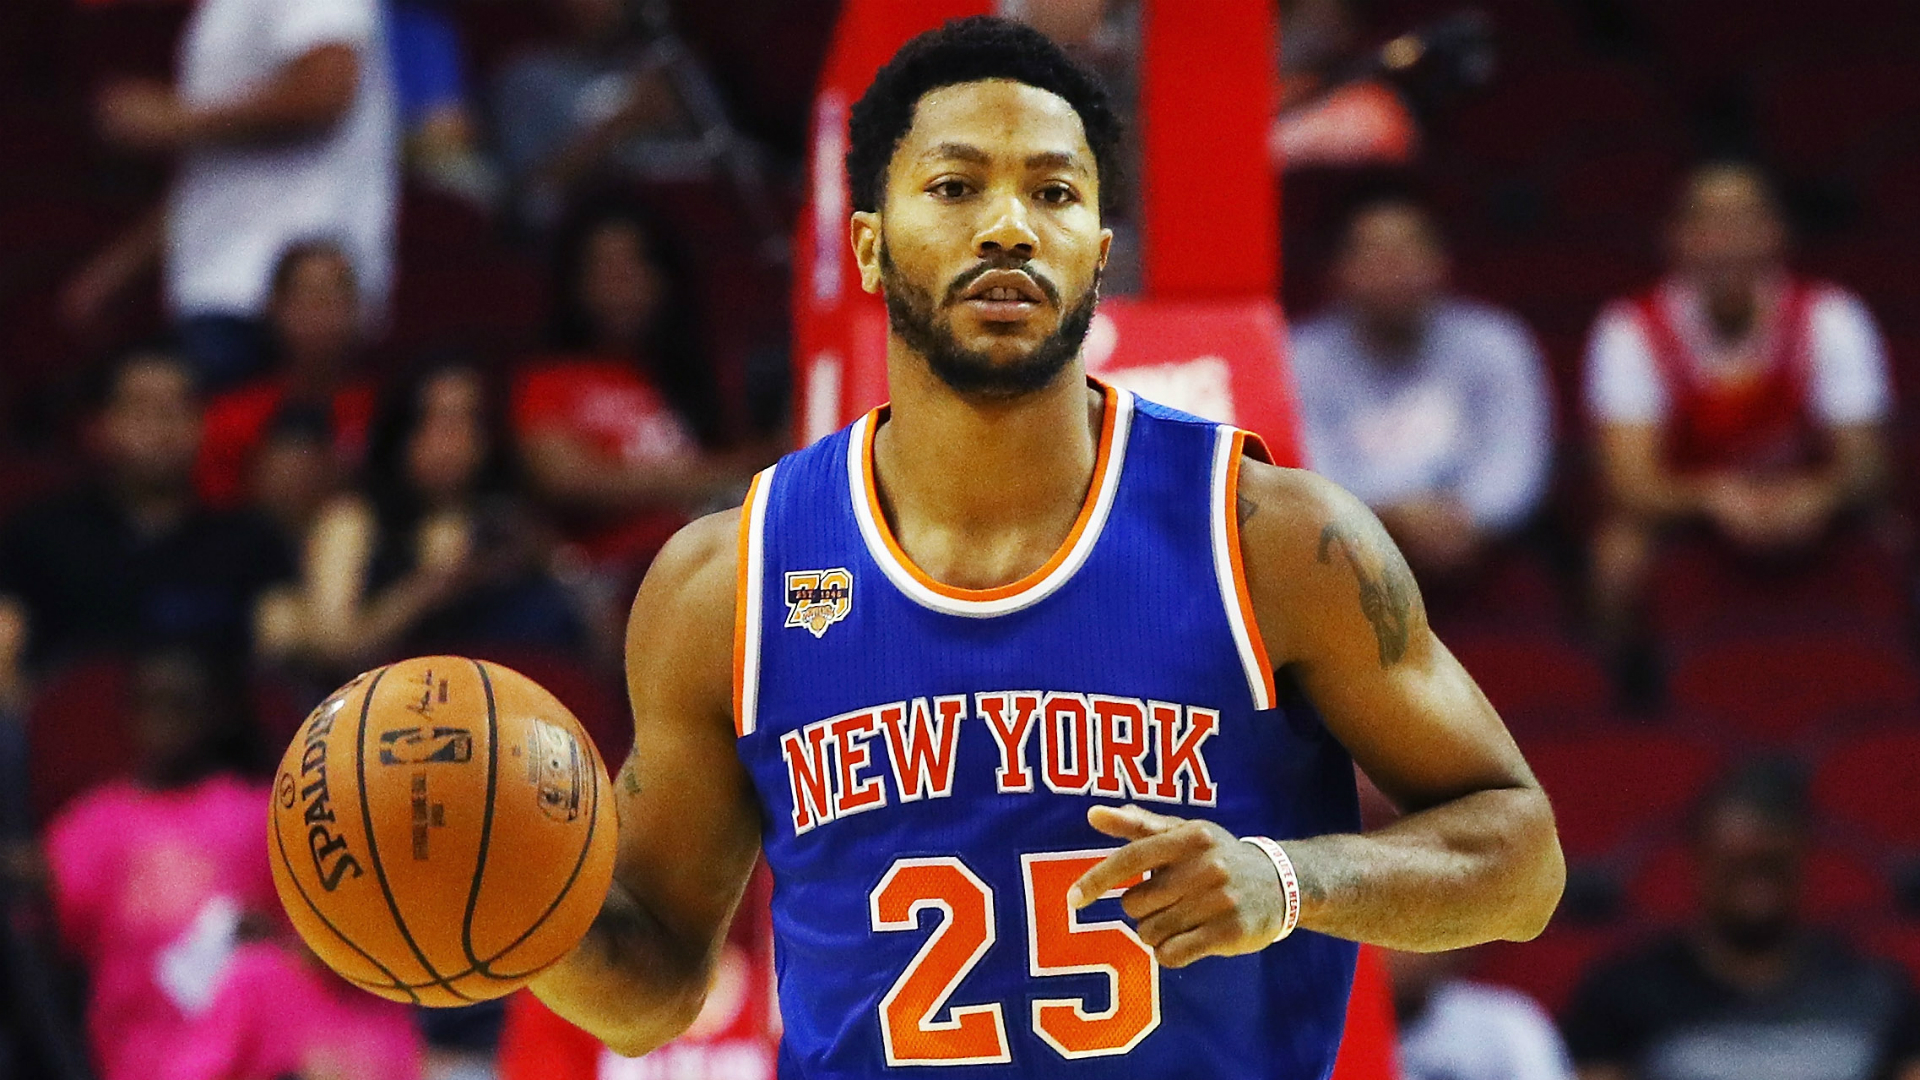 Derrick-rose-getty-ftr-100716_1cys5692tat4p13lhnxh2uf53f